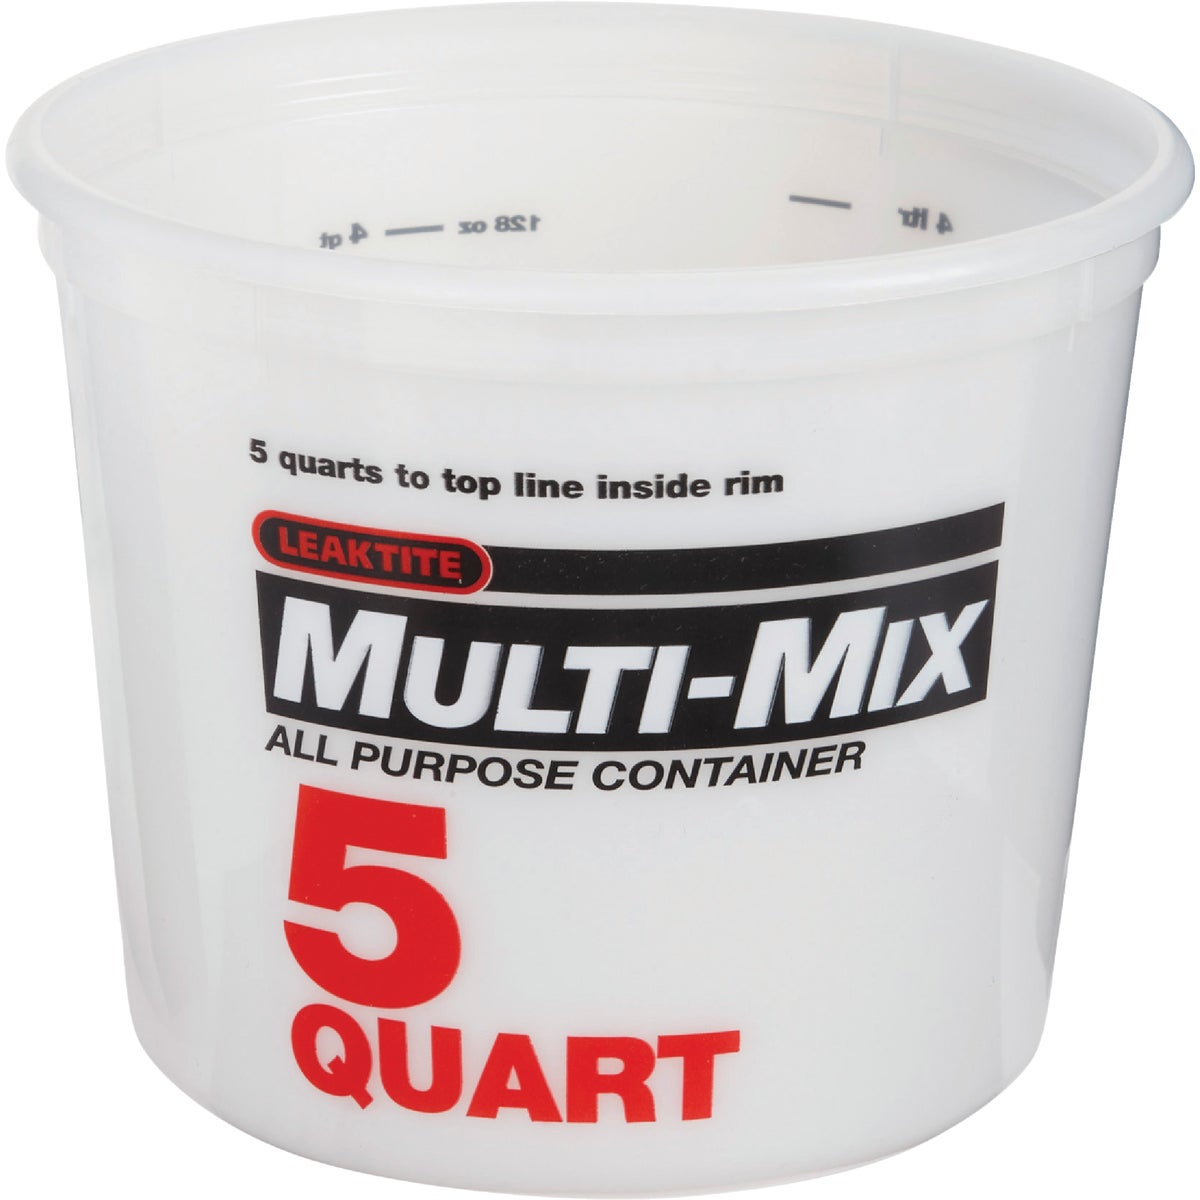 5QT MIXING CONTAINER - 10M3 by Leaktite Corporation